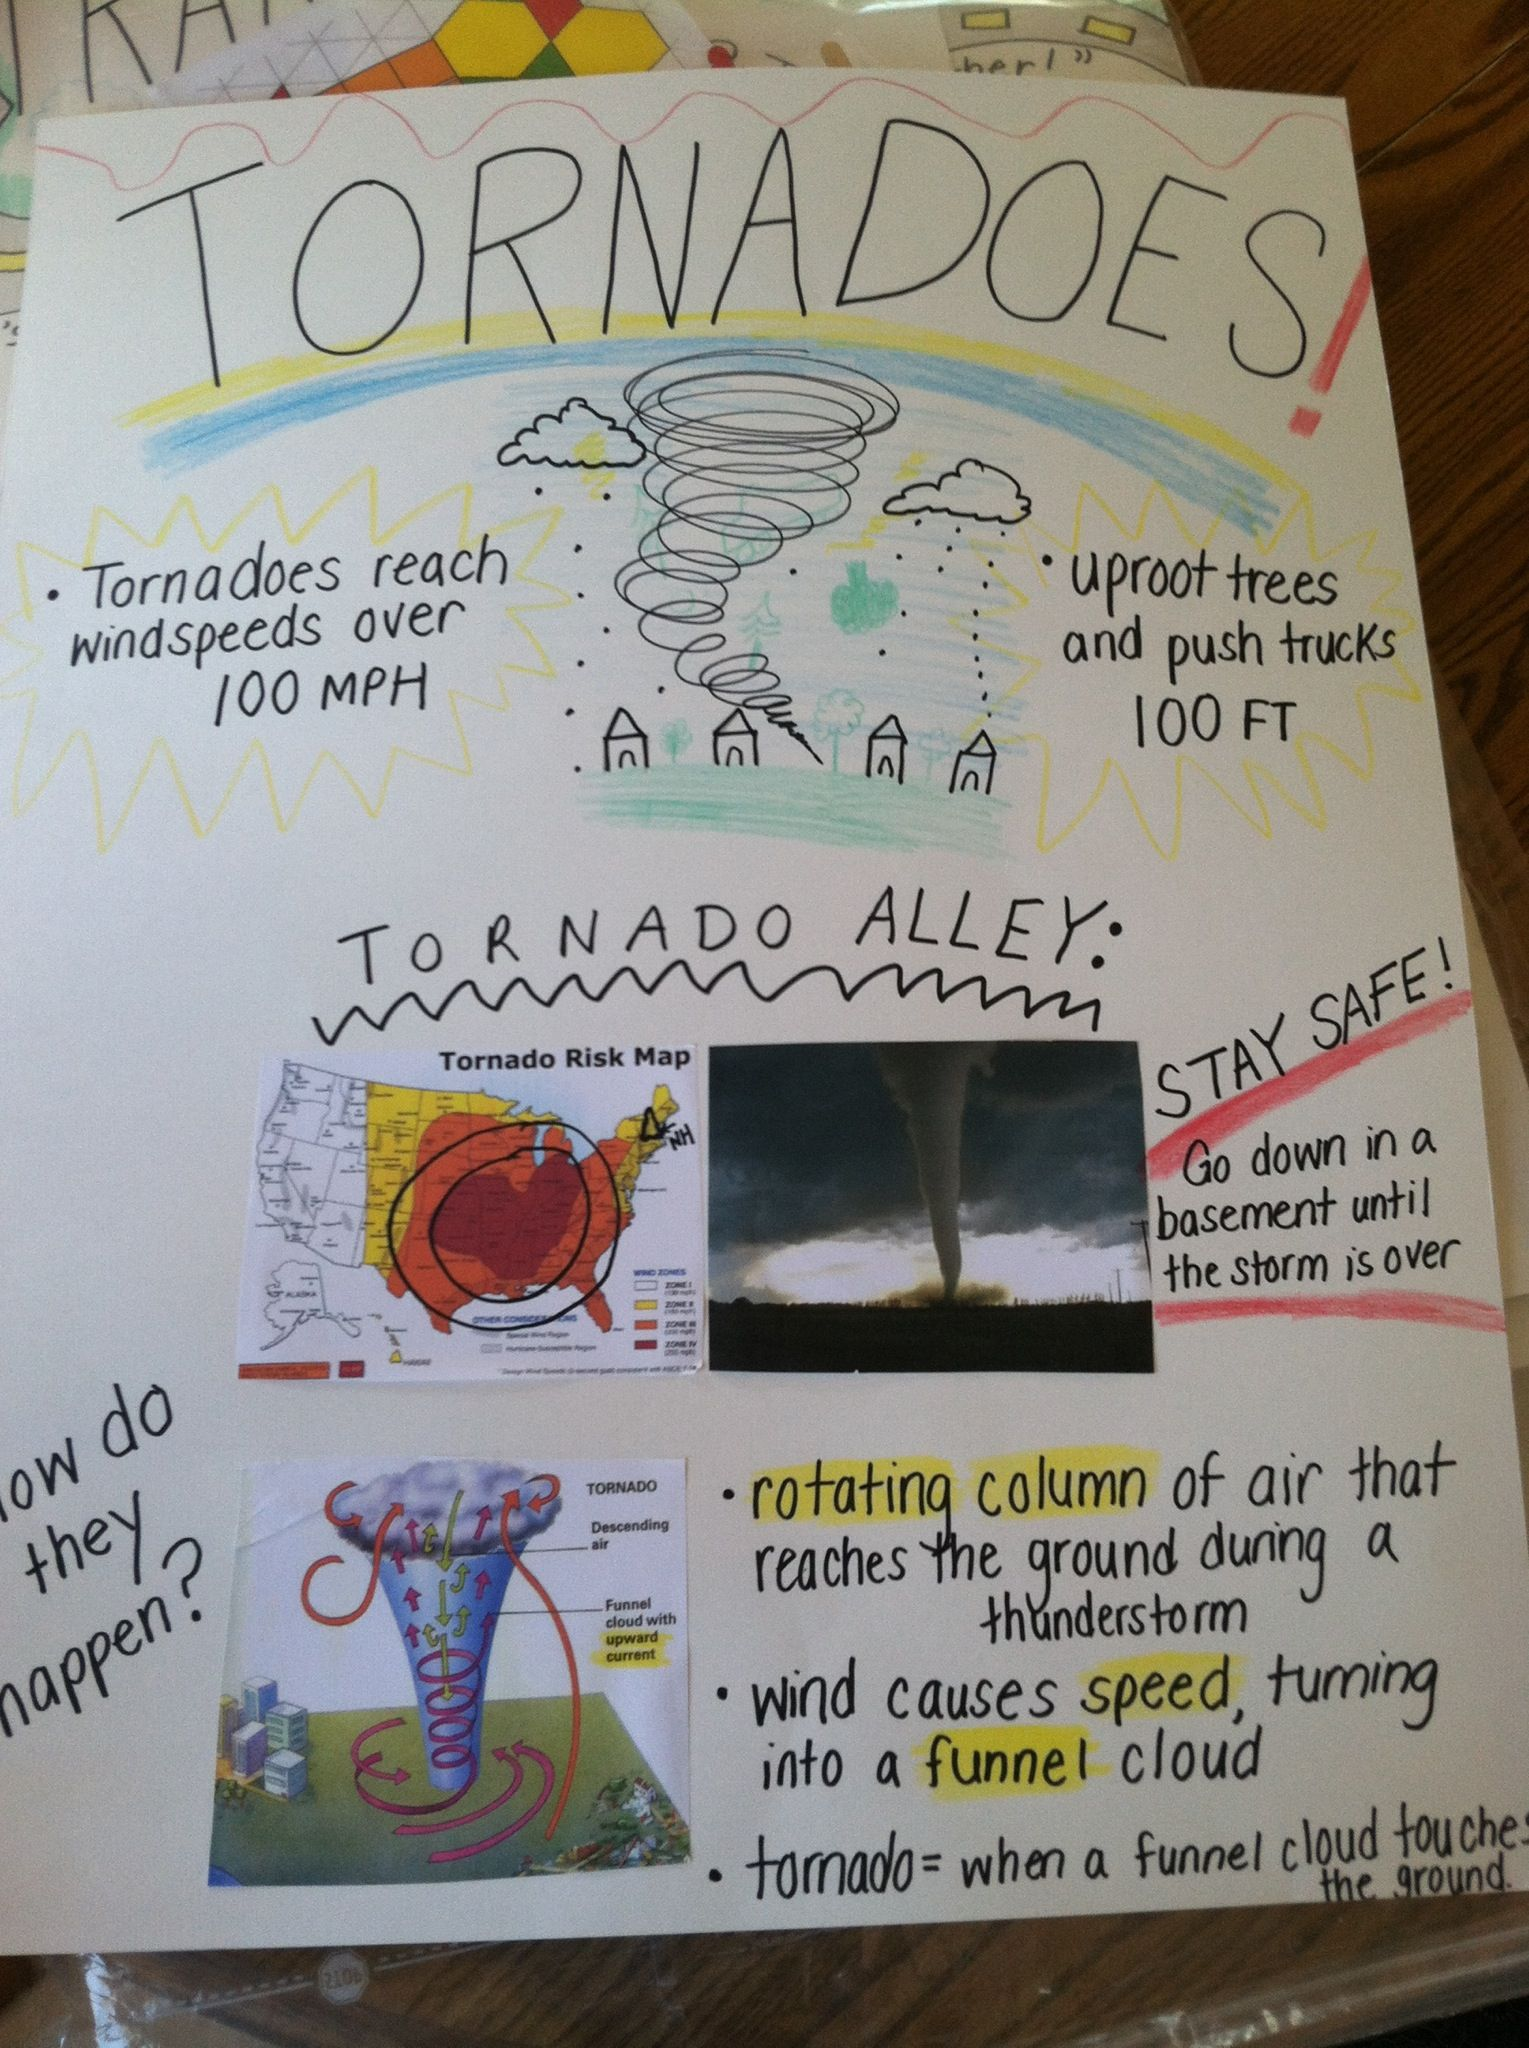 a729f94d8d184b5b87e0ea567924ec7a  Th Grade Science Fair Projects Tornado In A Bottle on tornado projects for 2nd graders, tornado science project for elementary, tornado on science board, tornado model for science project, tornado projects for school, tornado in the bottle, vortex science fair projects, tornado in a jar, tornado vortex science project board,